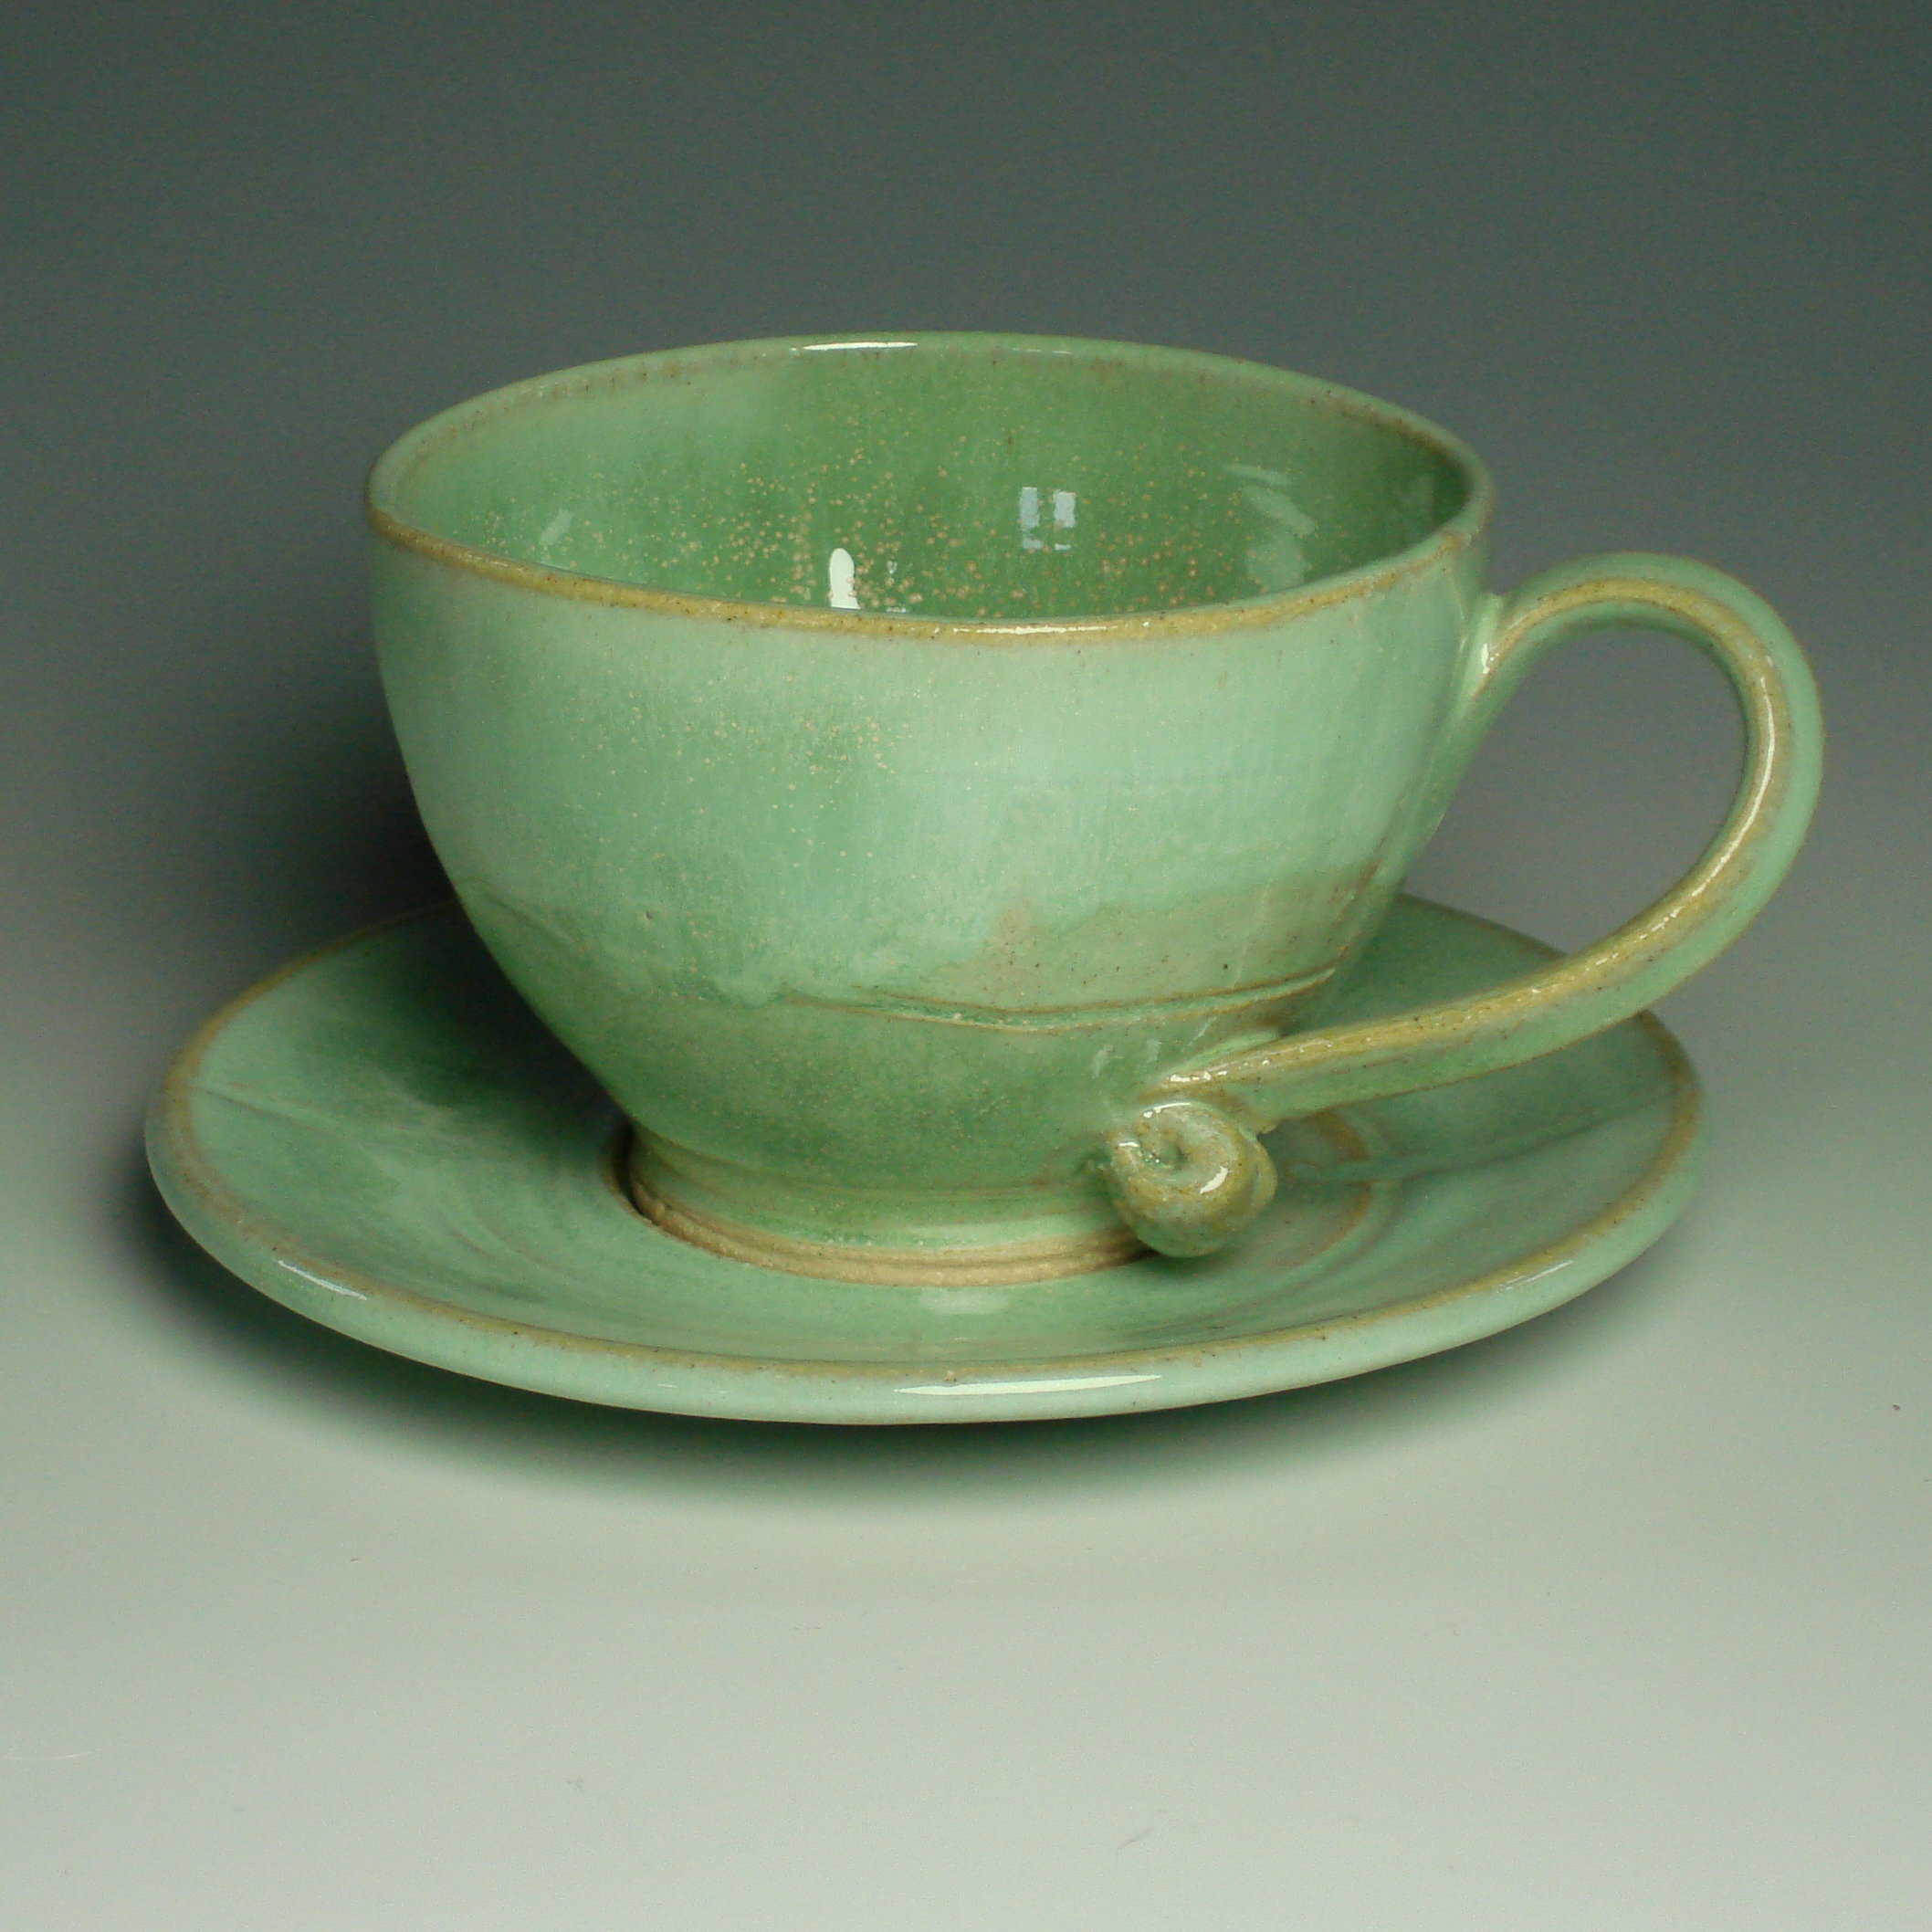 Cappucino Cup and Saucer - Spring green